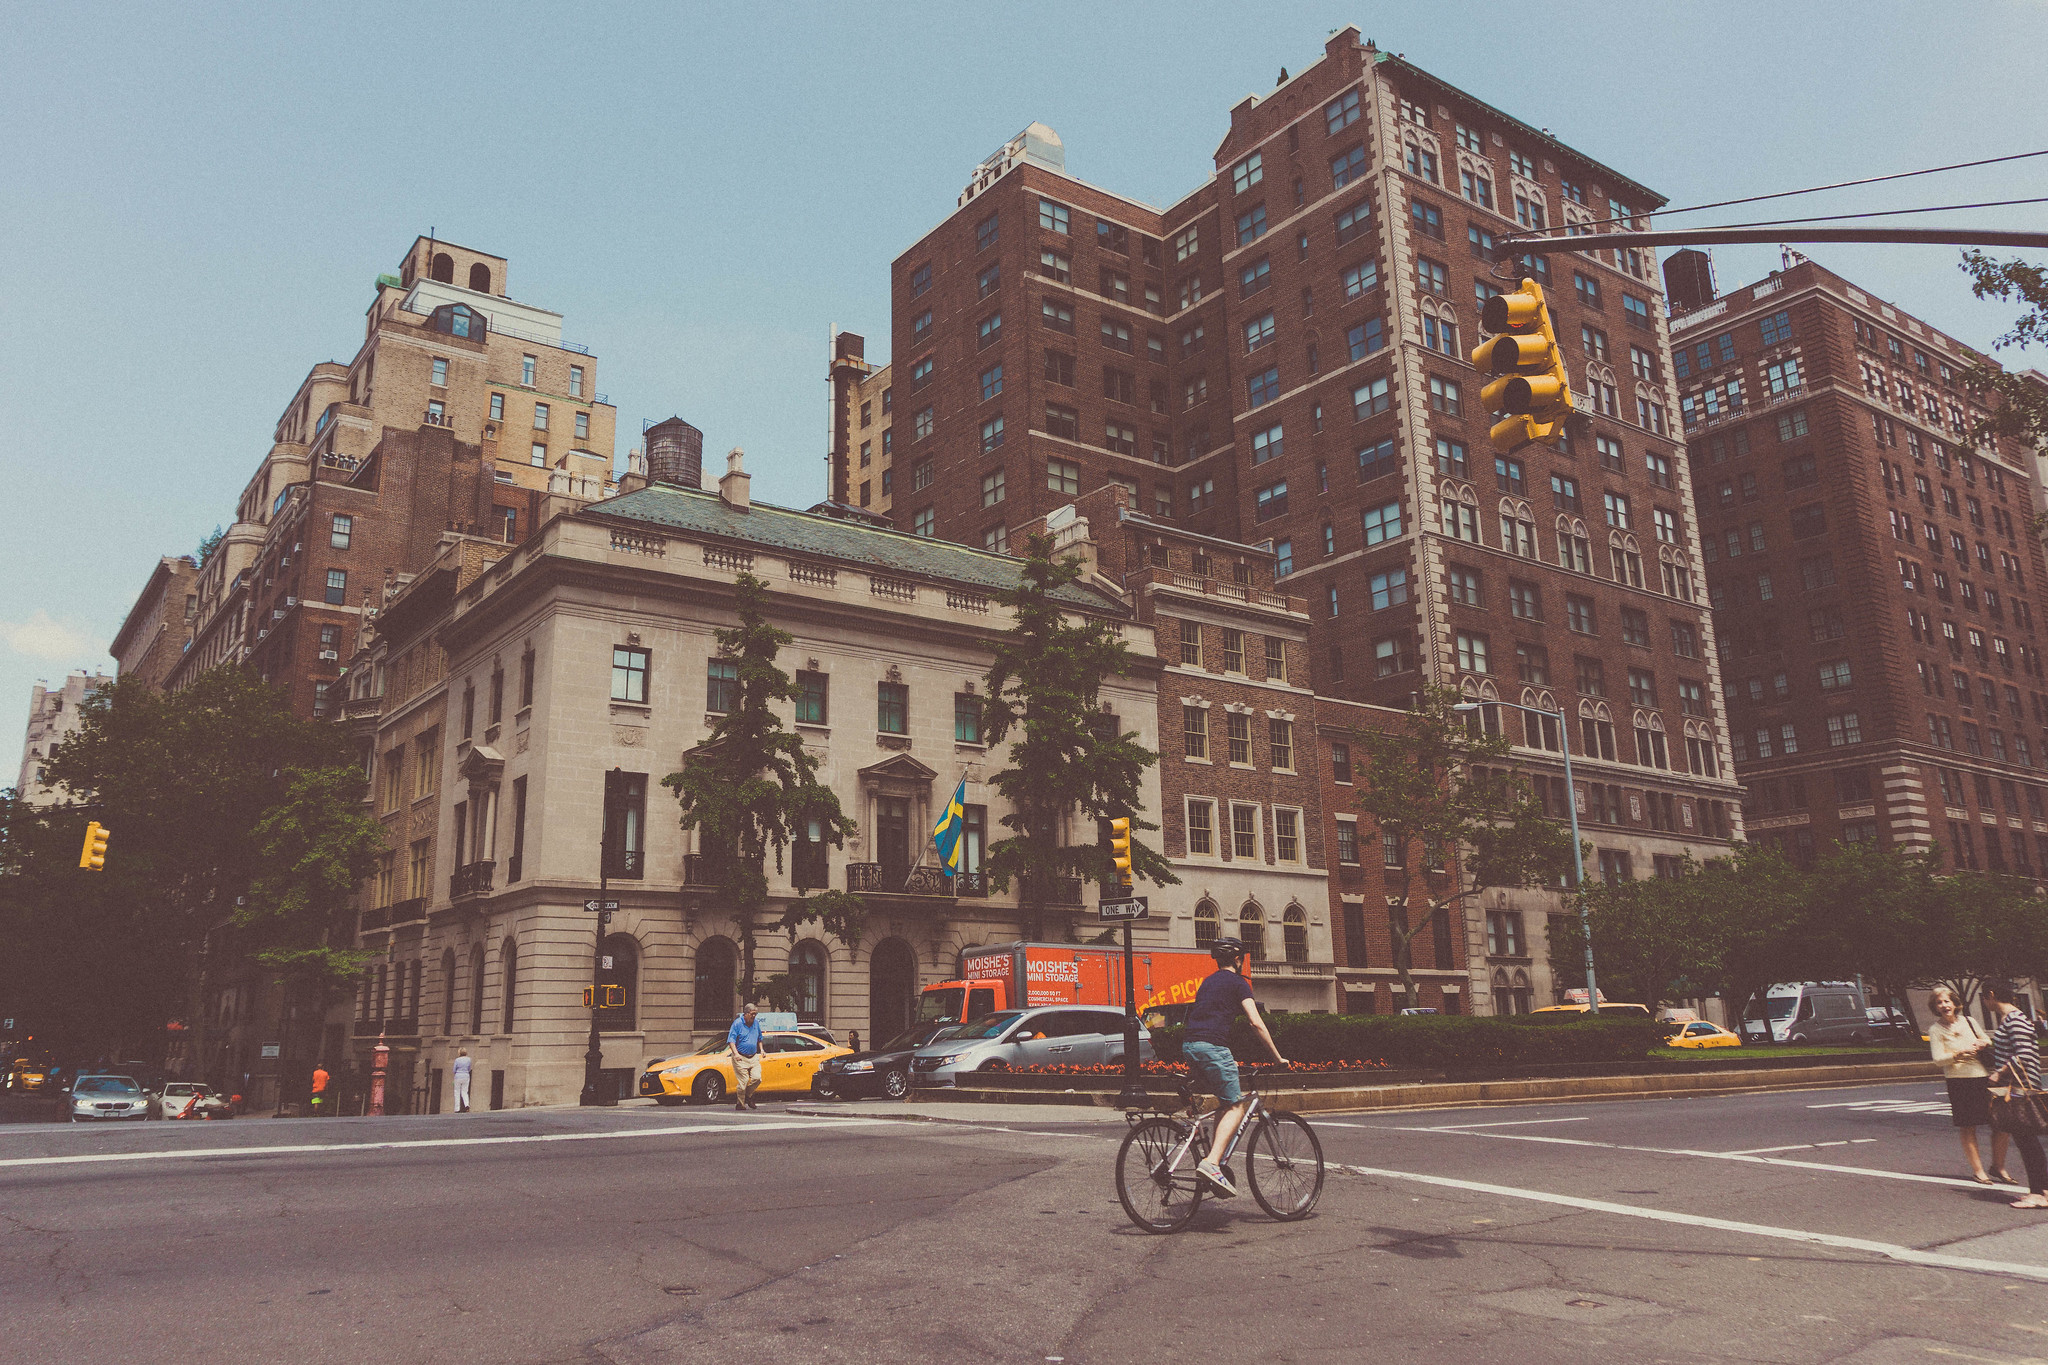 a photograph of the Upper East Side of New York City